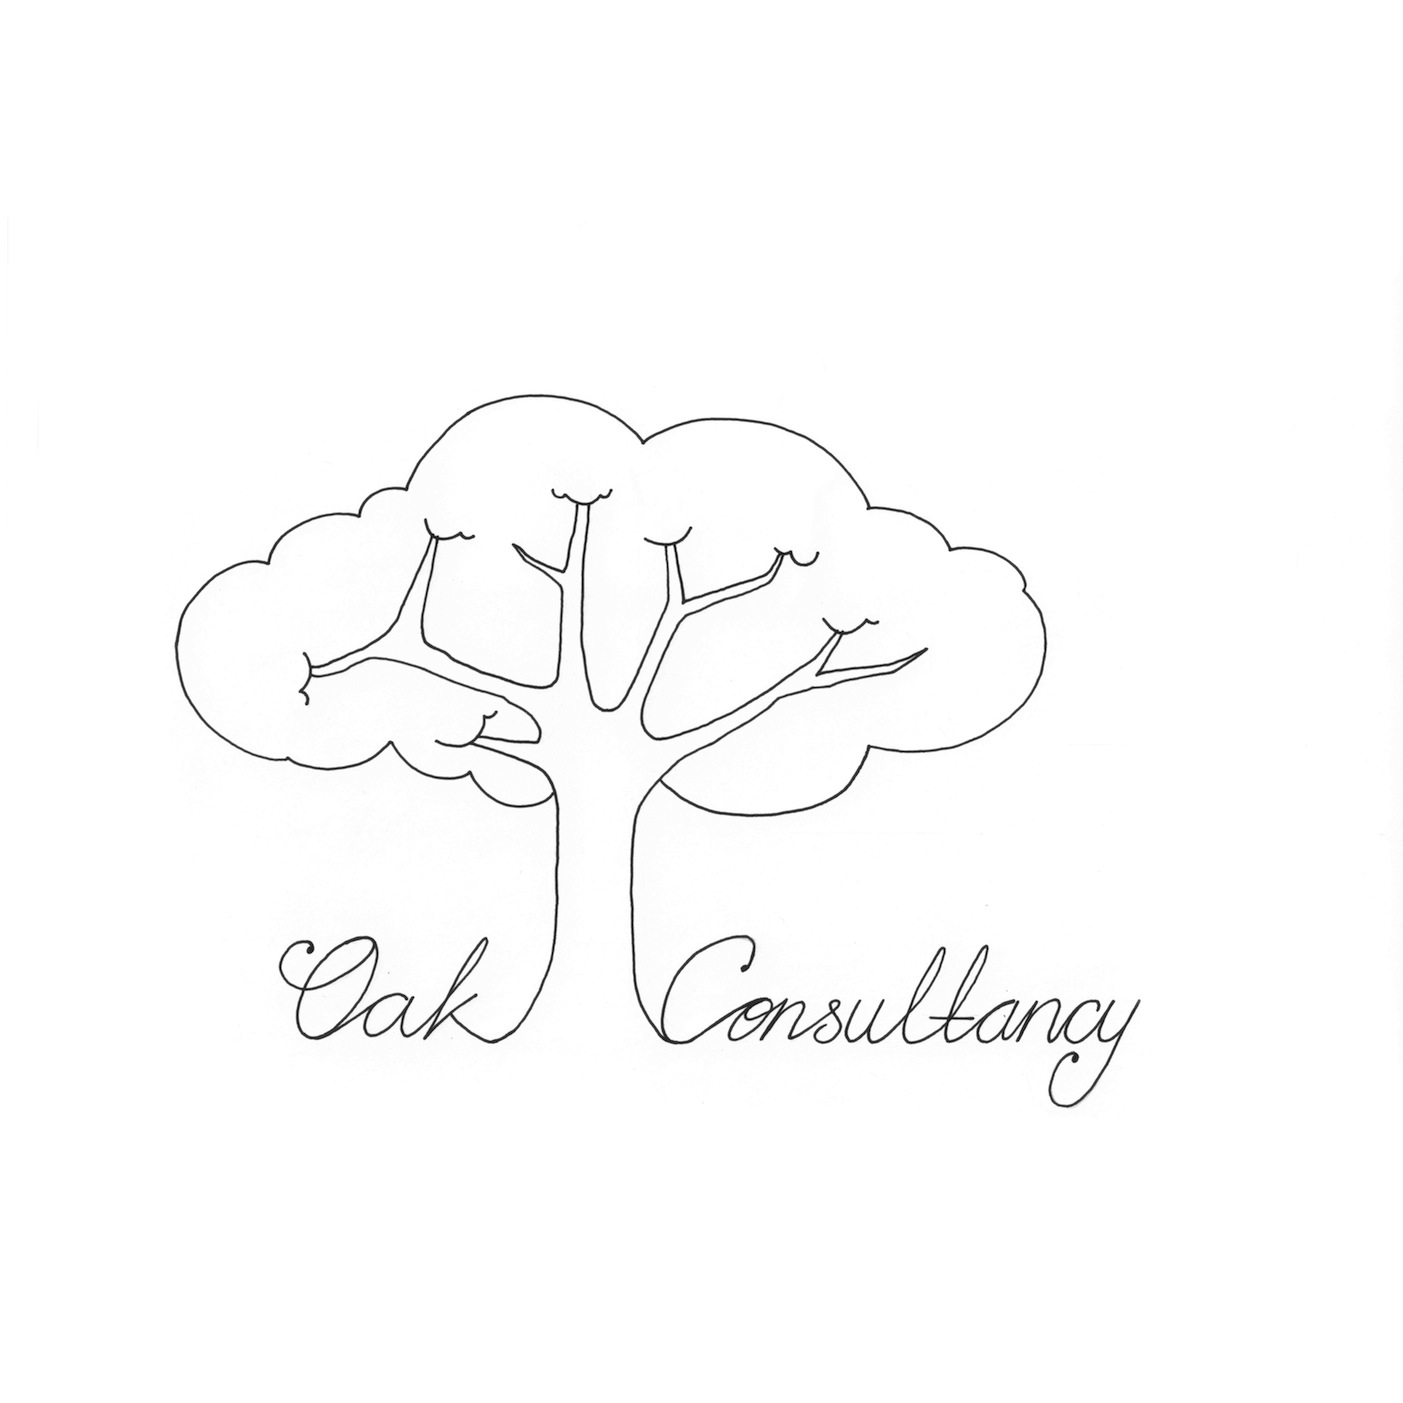 Oak Consultancy Logo